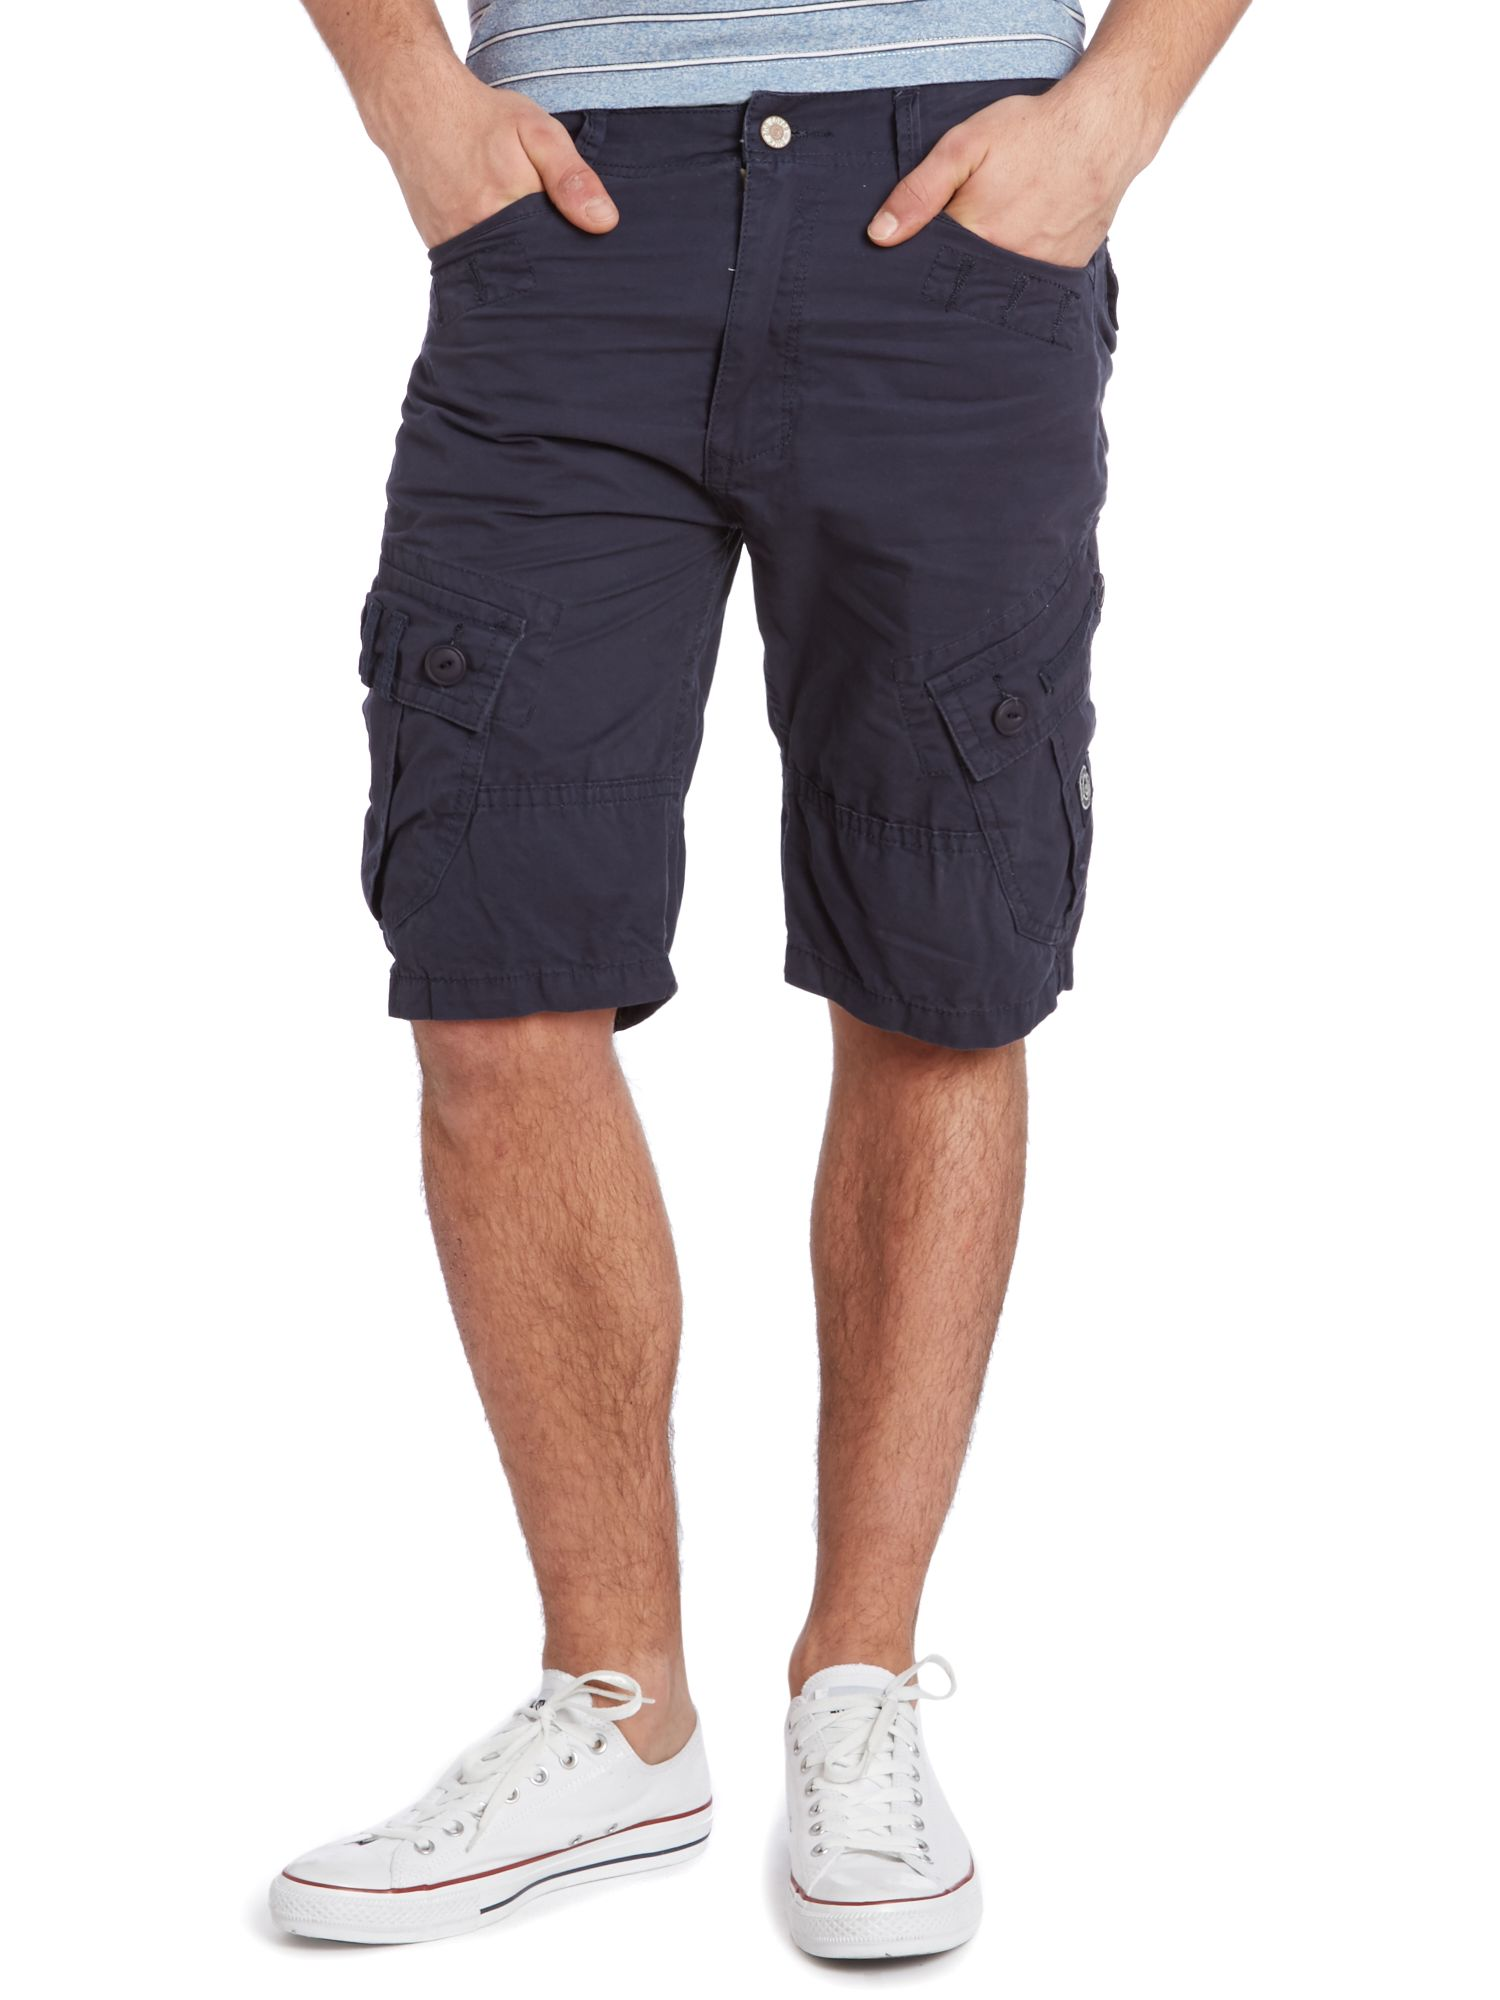 Kardgon combat short in cotton twill